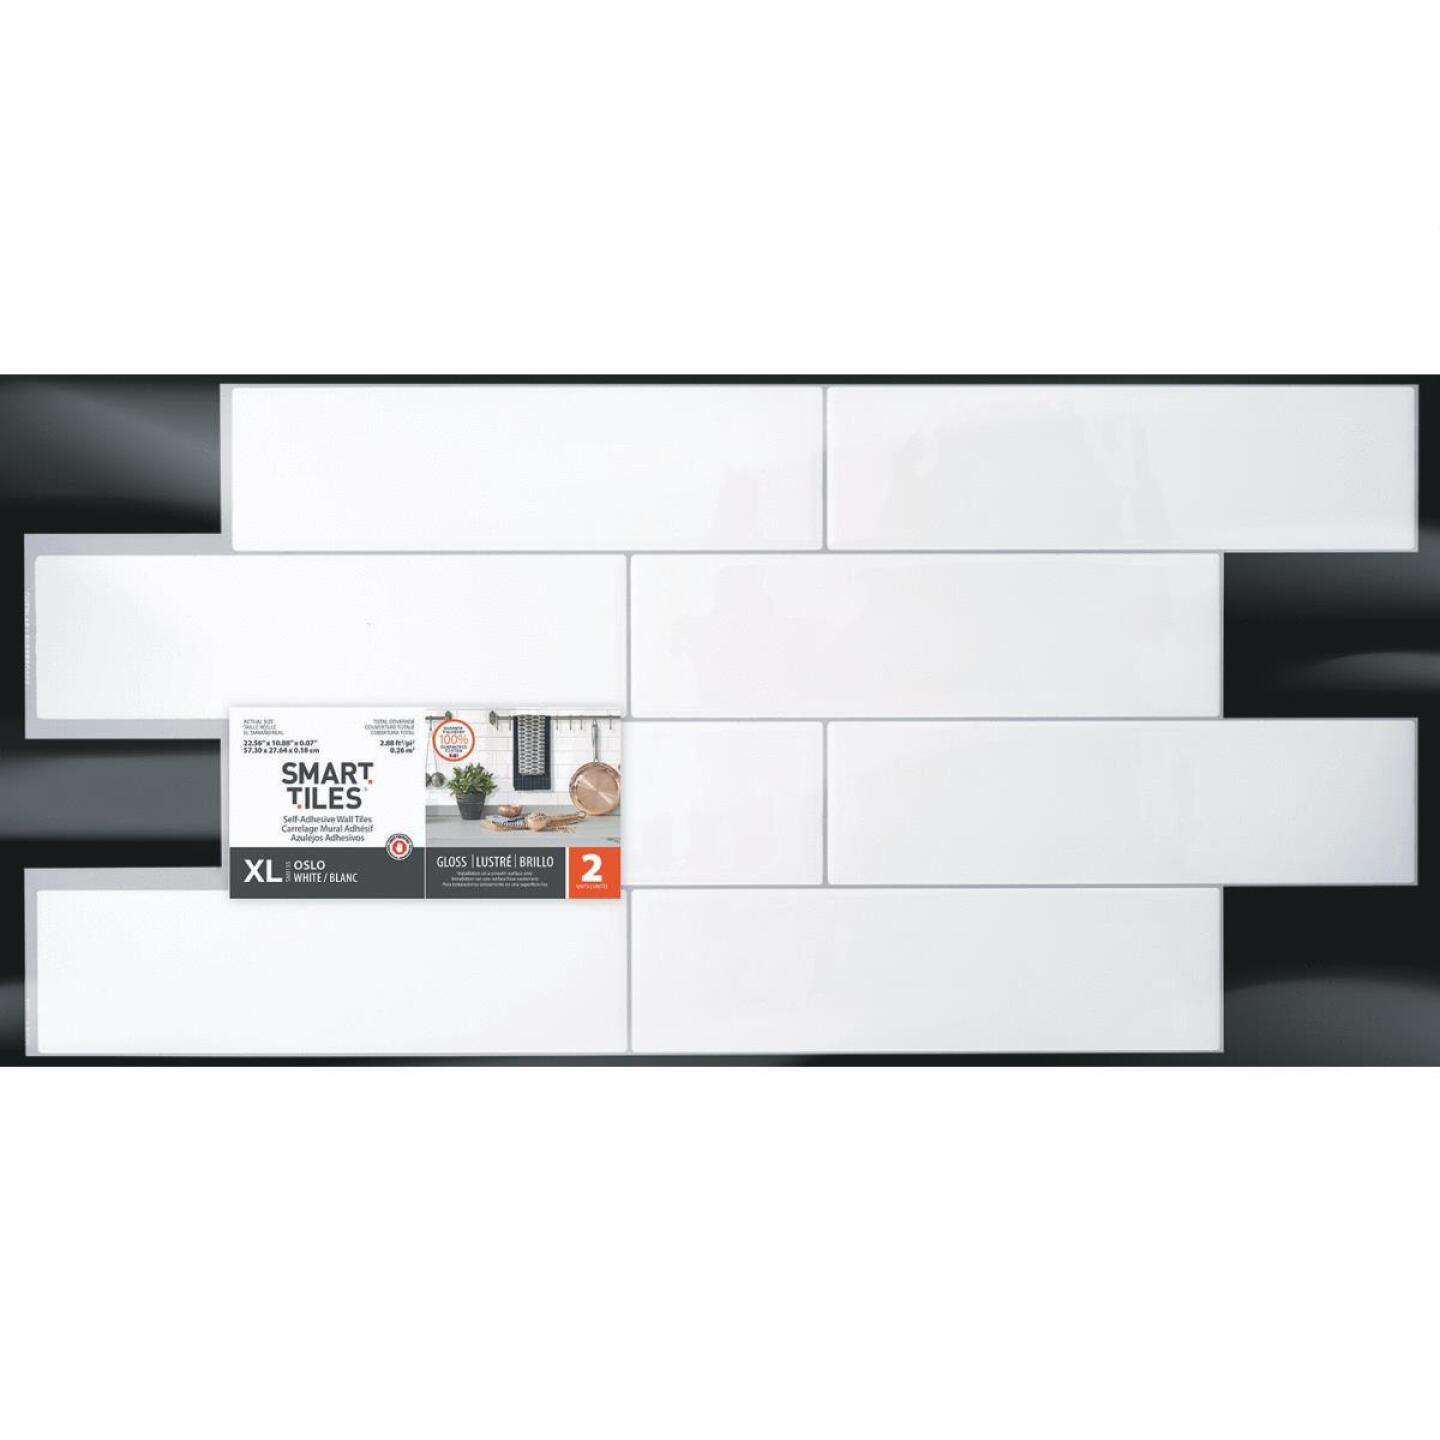 Smart Tiles 10.88 In. x 22.56 In. Glass-Like Plastic Backsplash Peel & Stick, Oslo White Subway Tile (2-Pack) Image 2